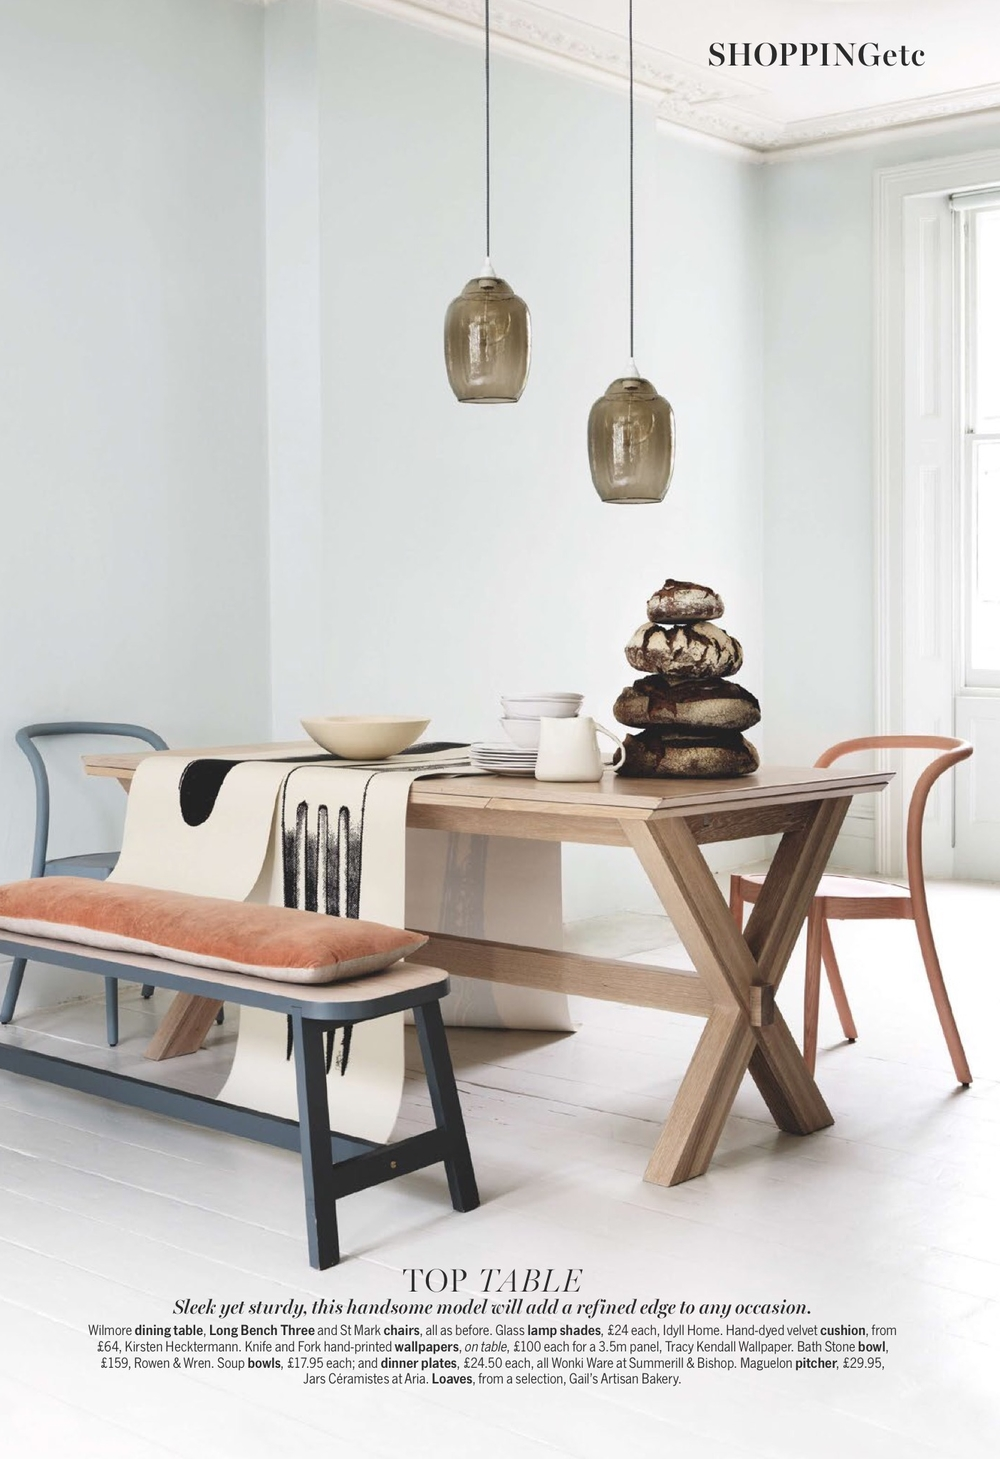 Wilmore Dining Table - Livingetc - Sep 15